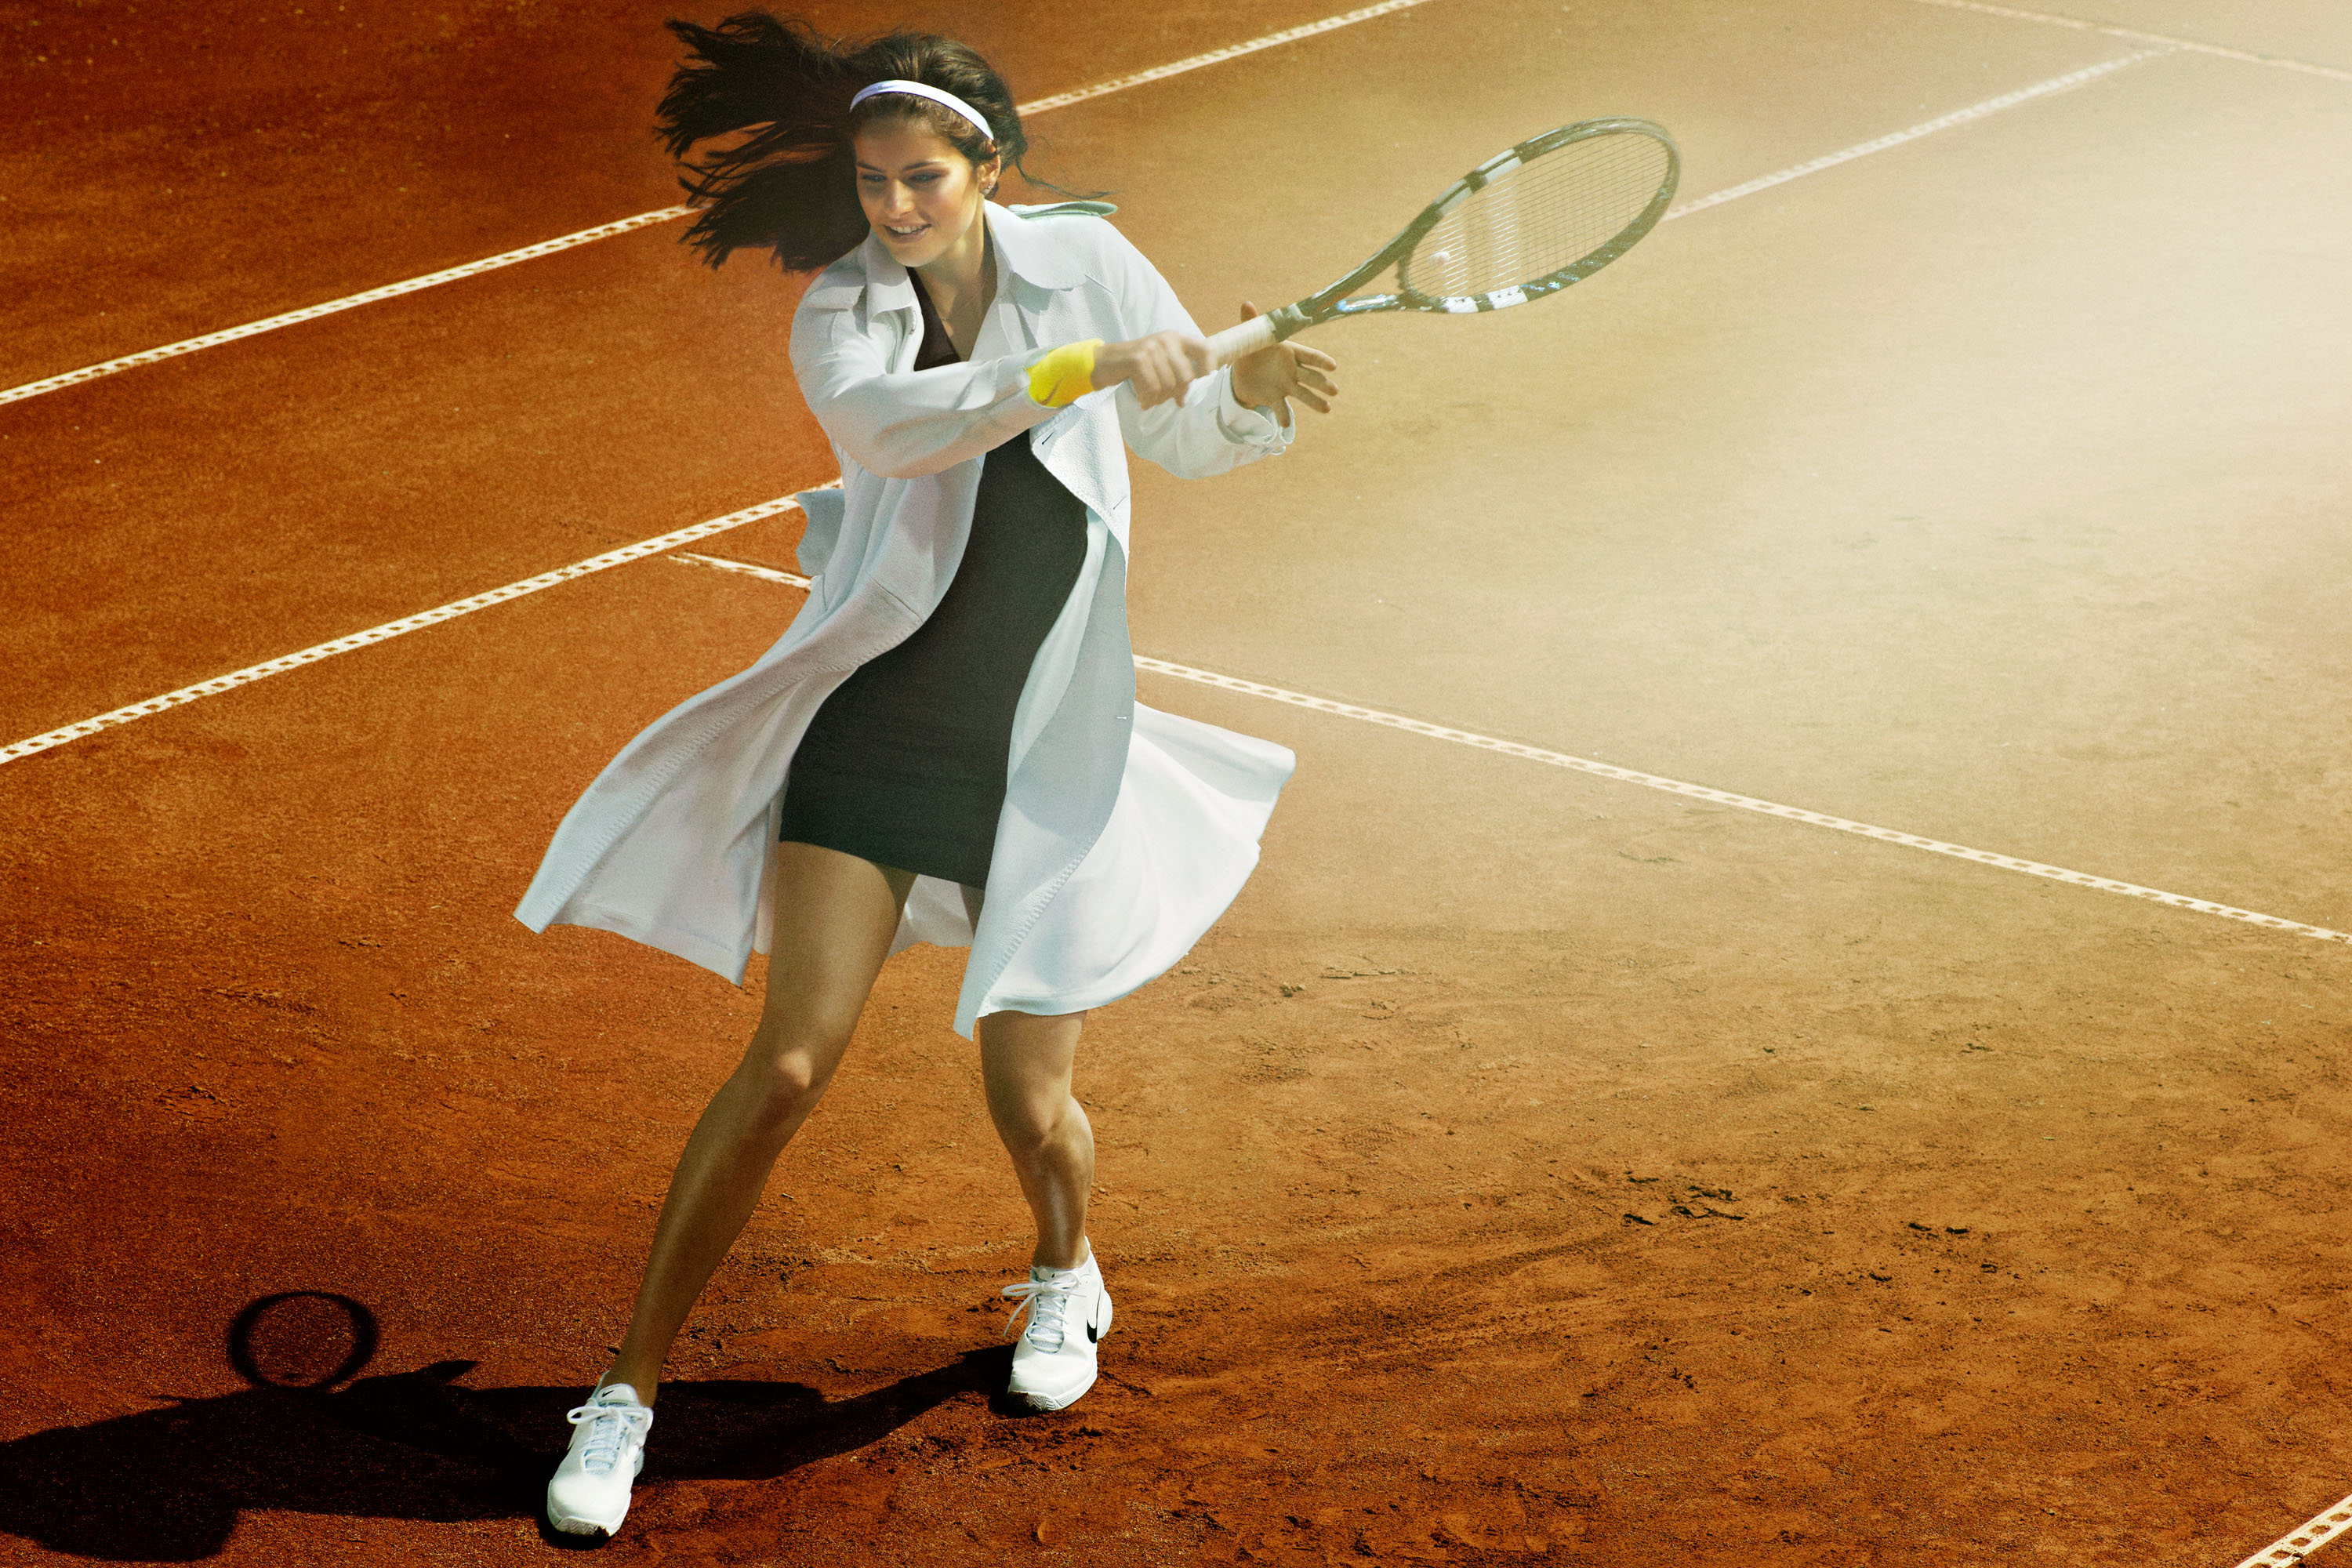 Myself Olympics, Sport, NIKE Germany, Detlef Schneider Photography, Julia Goerges